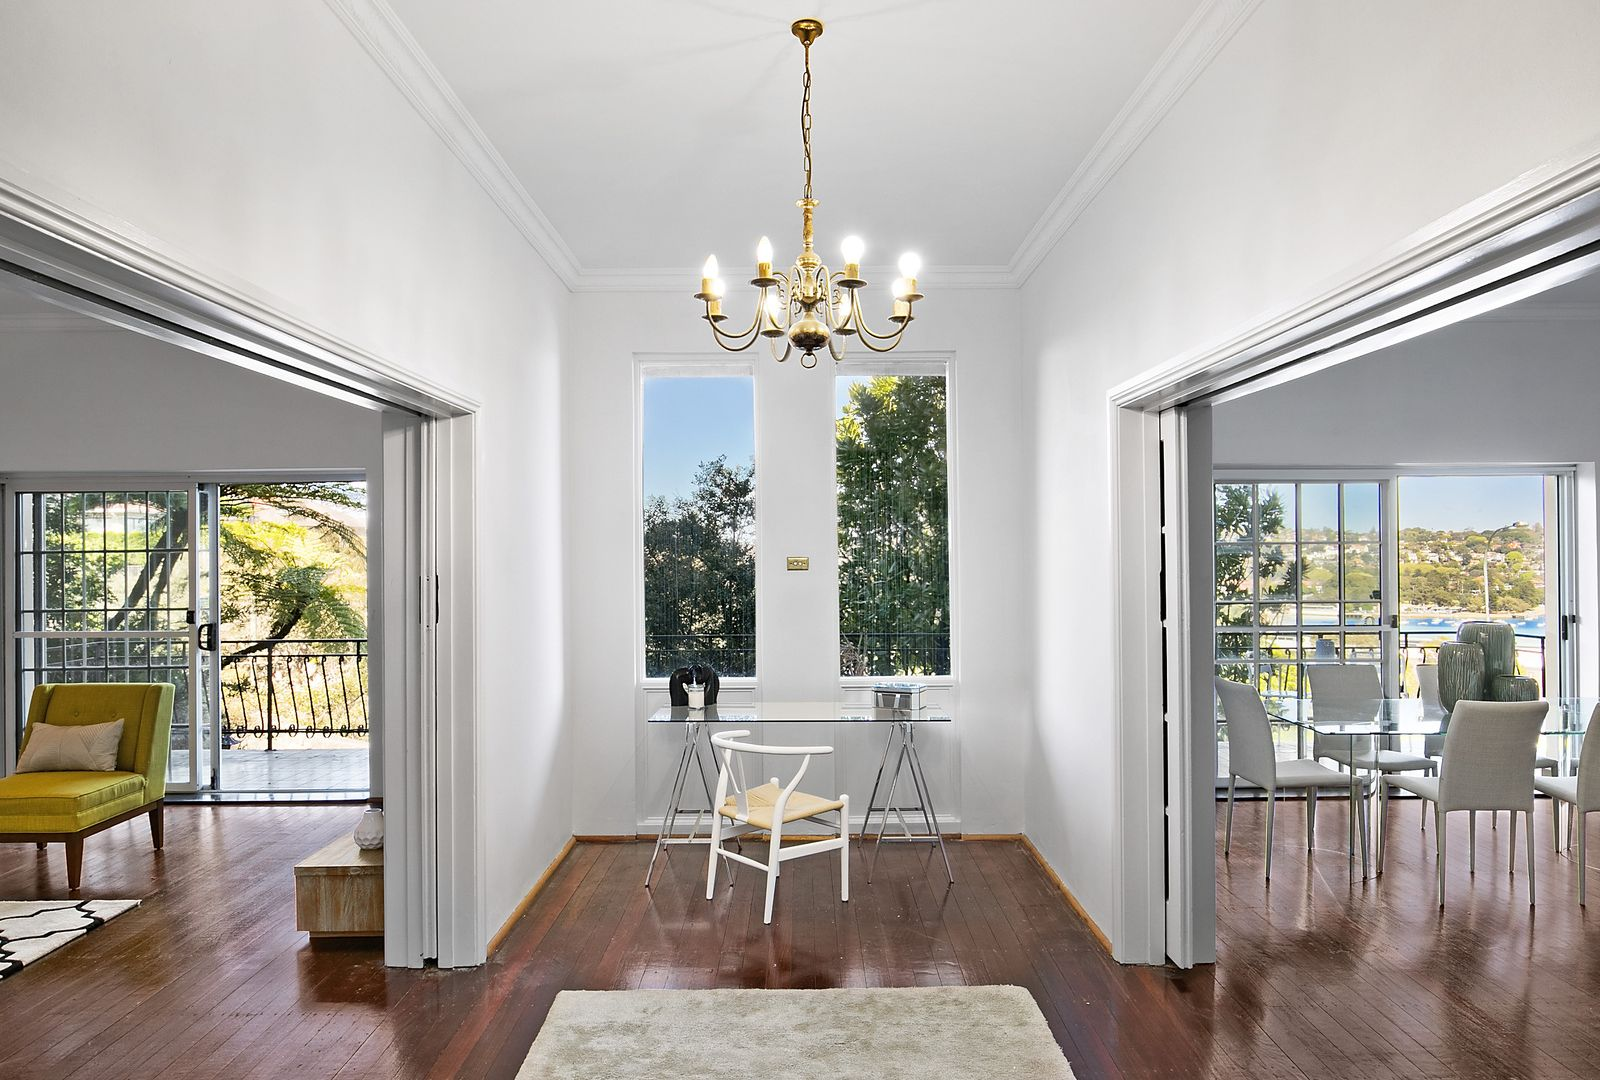 1/48 Towns Road, Vaucluse NSW 2030, Image 2